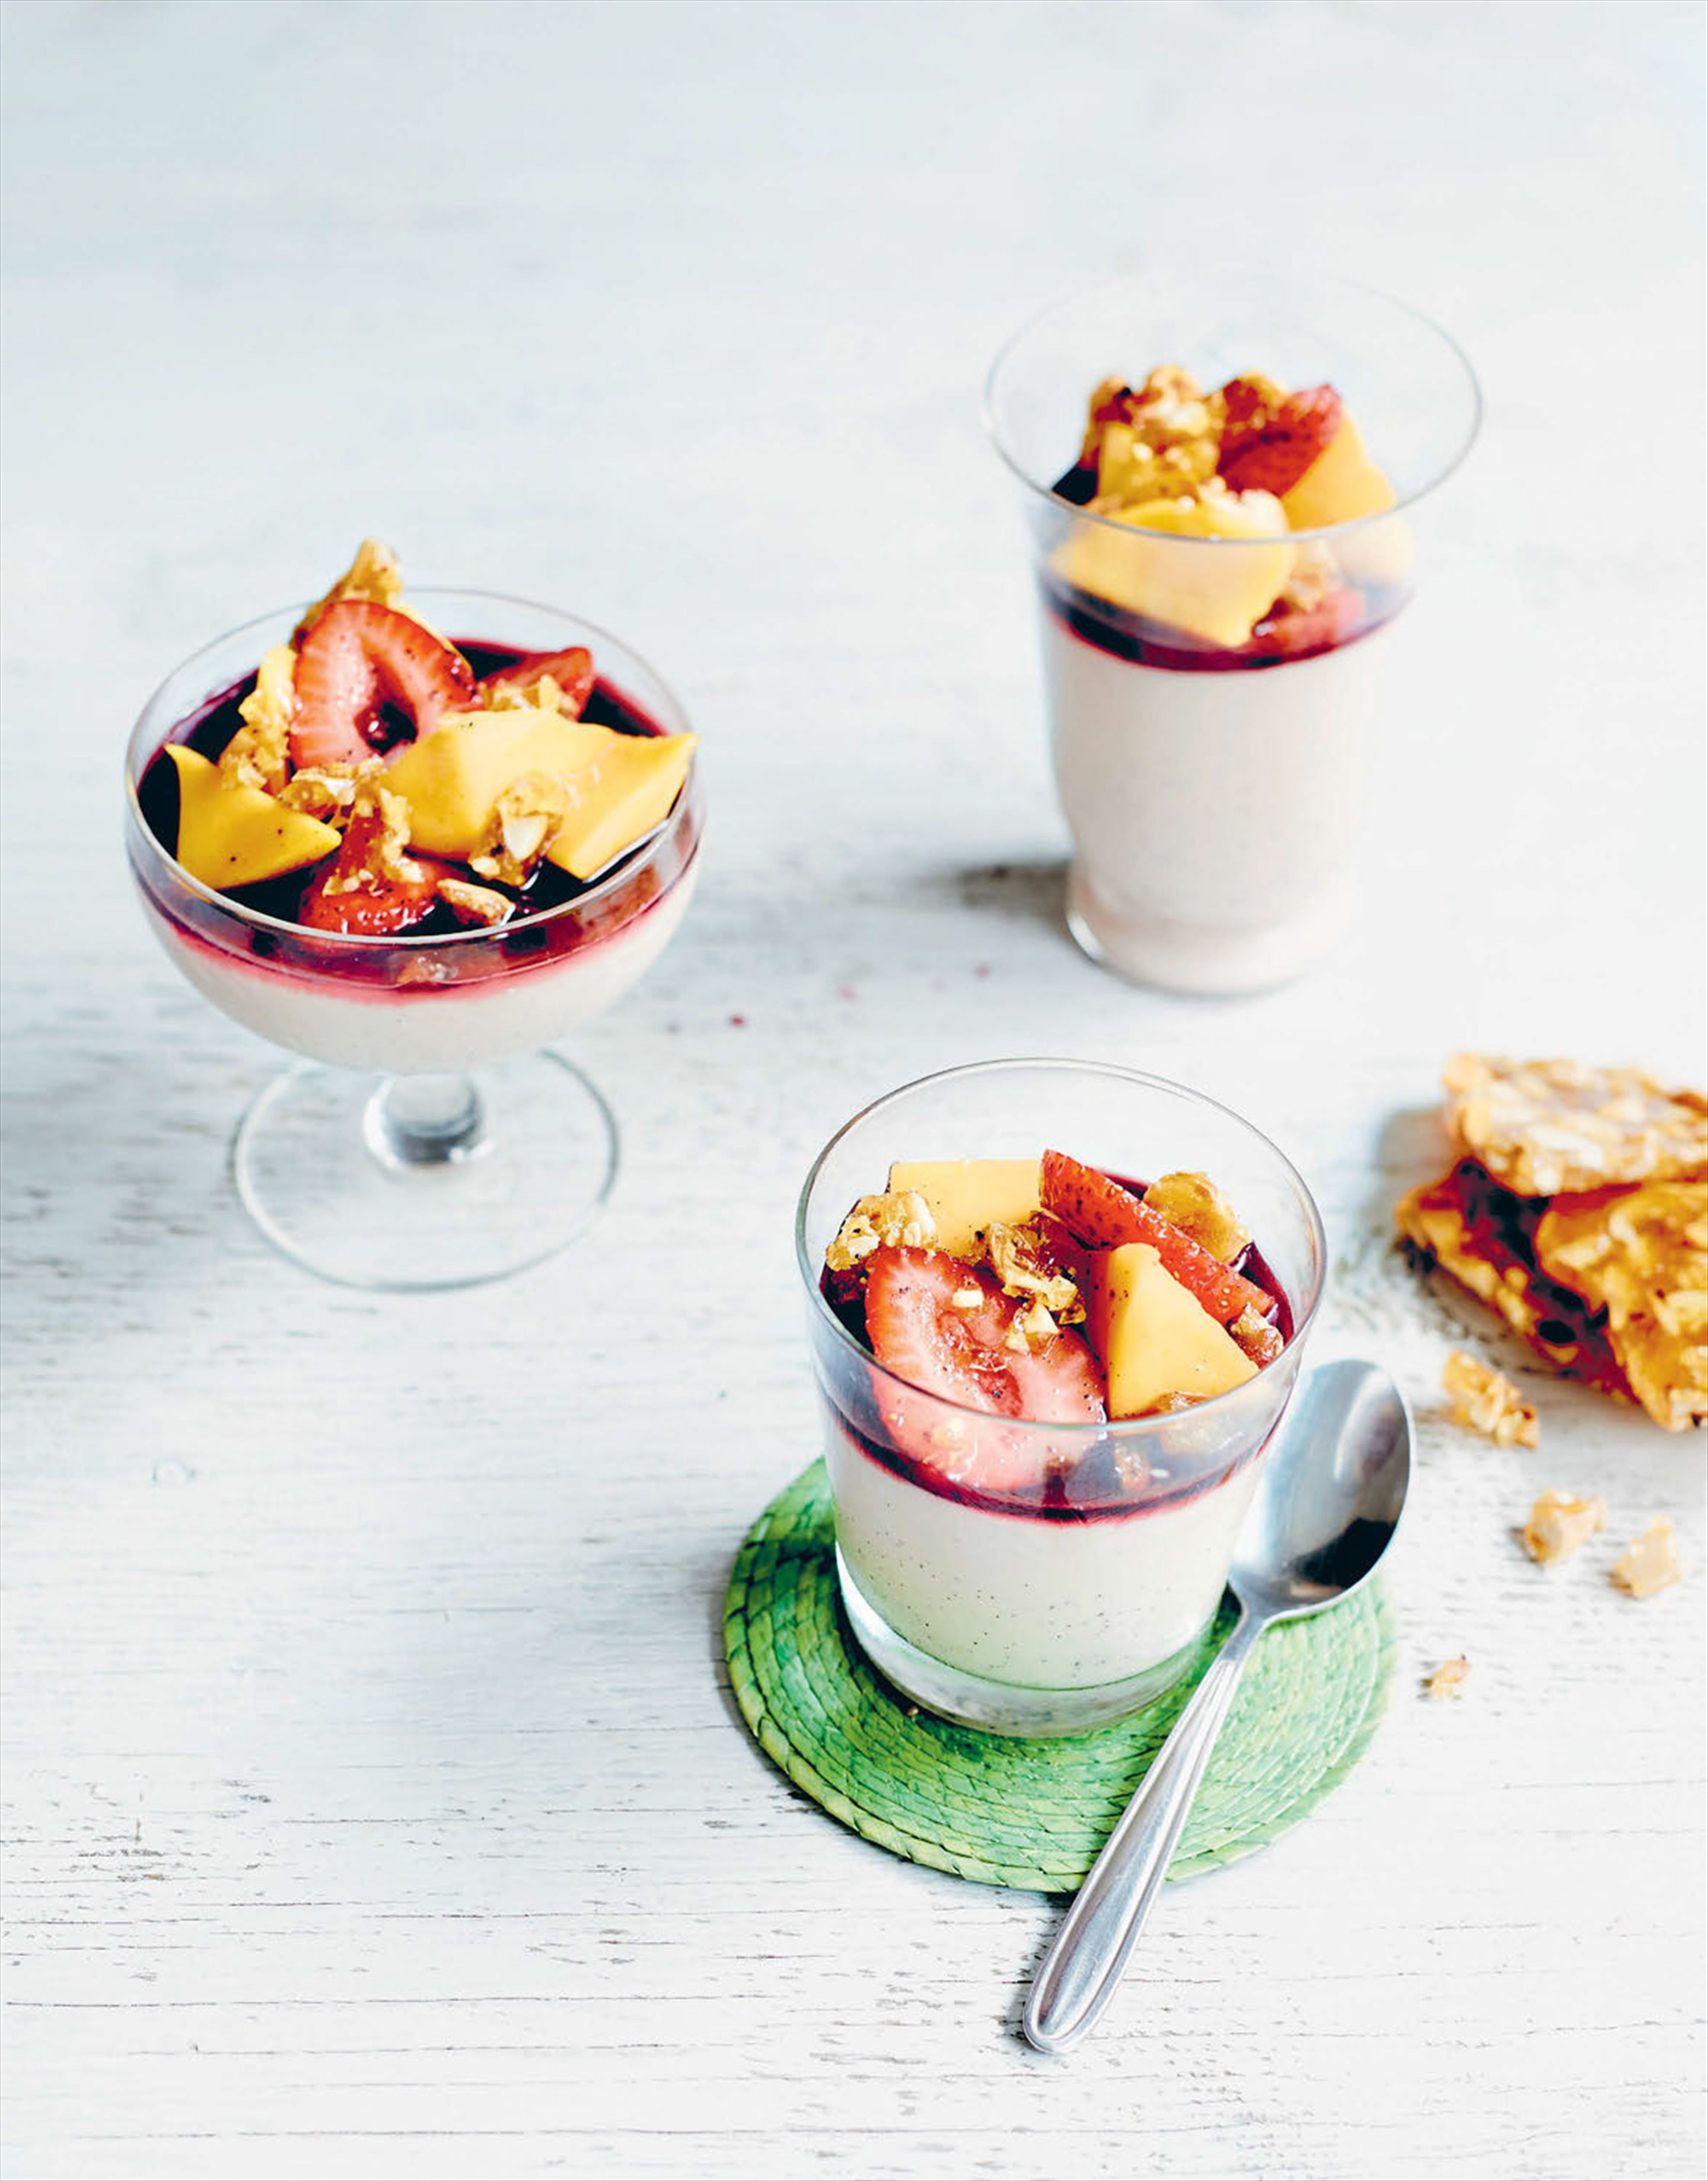 Coconut panna cotta with napa-style strawberry & mango salad